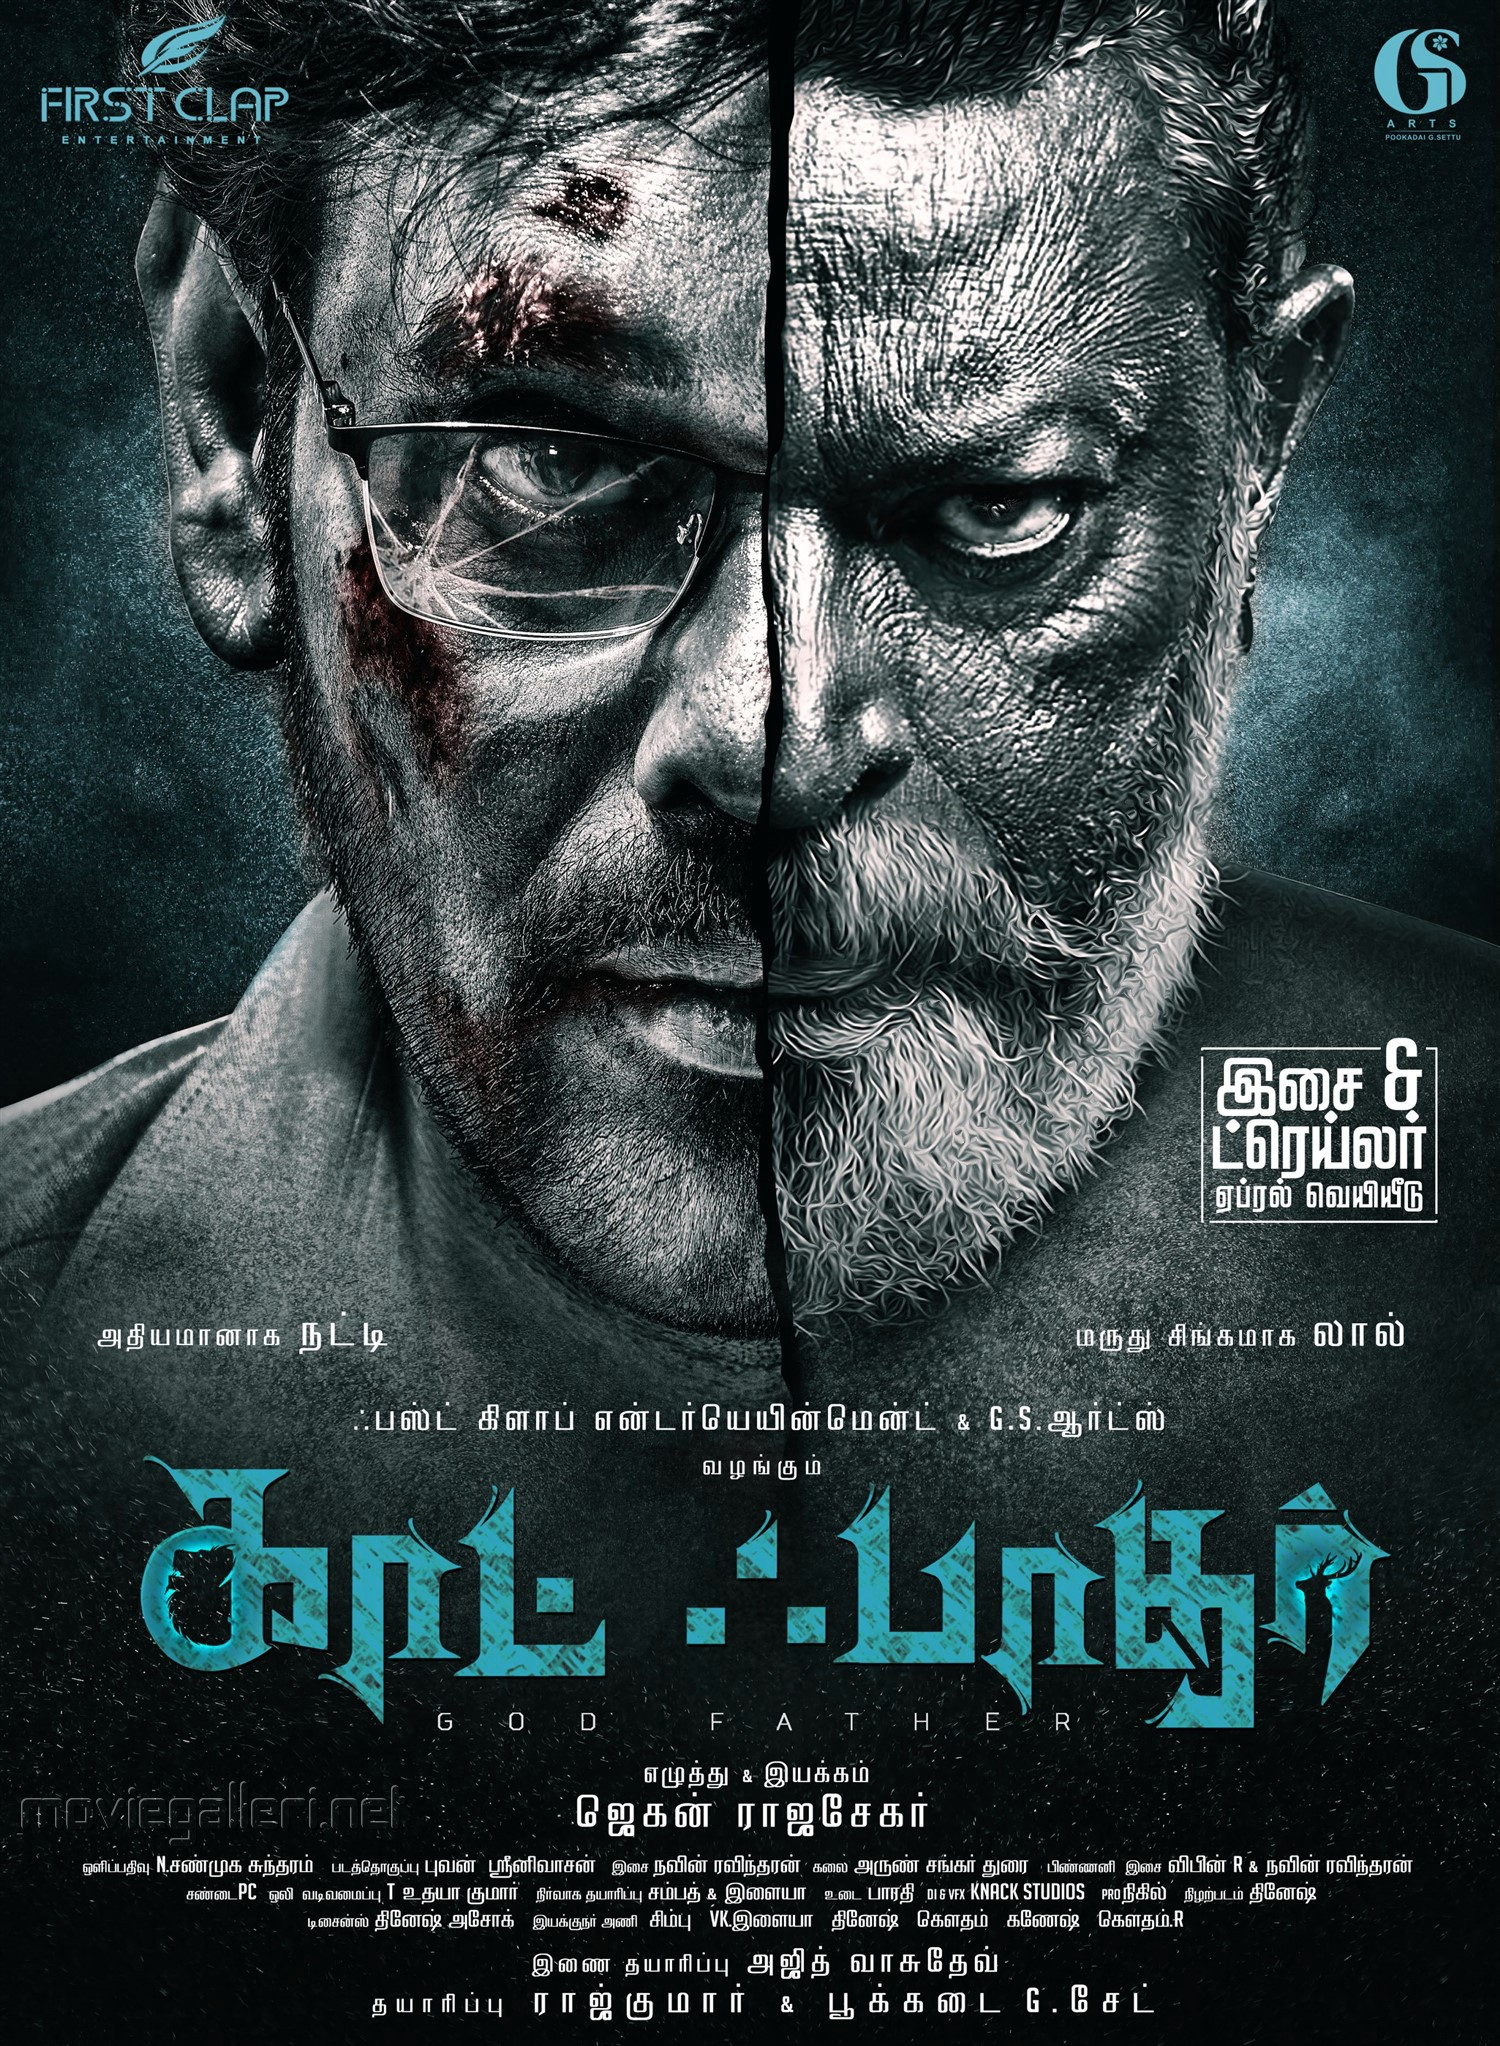 Godfather Movie First Look Poster HD